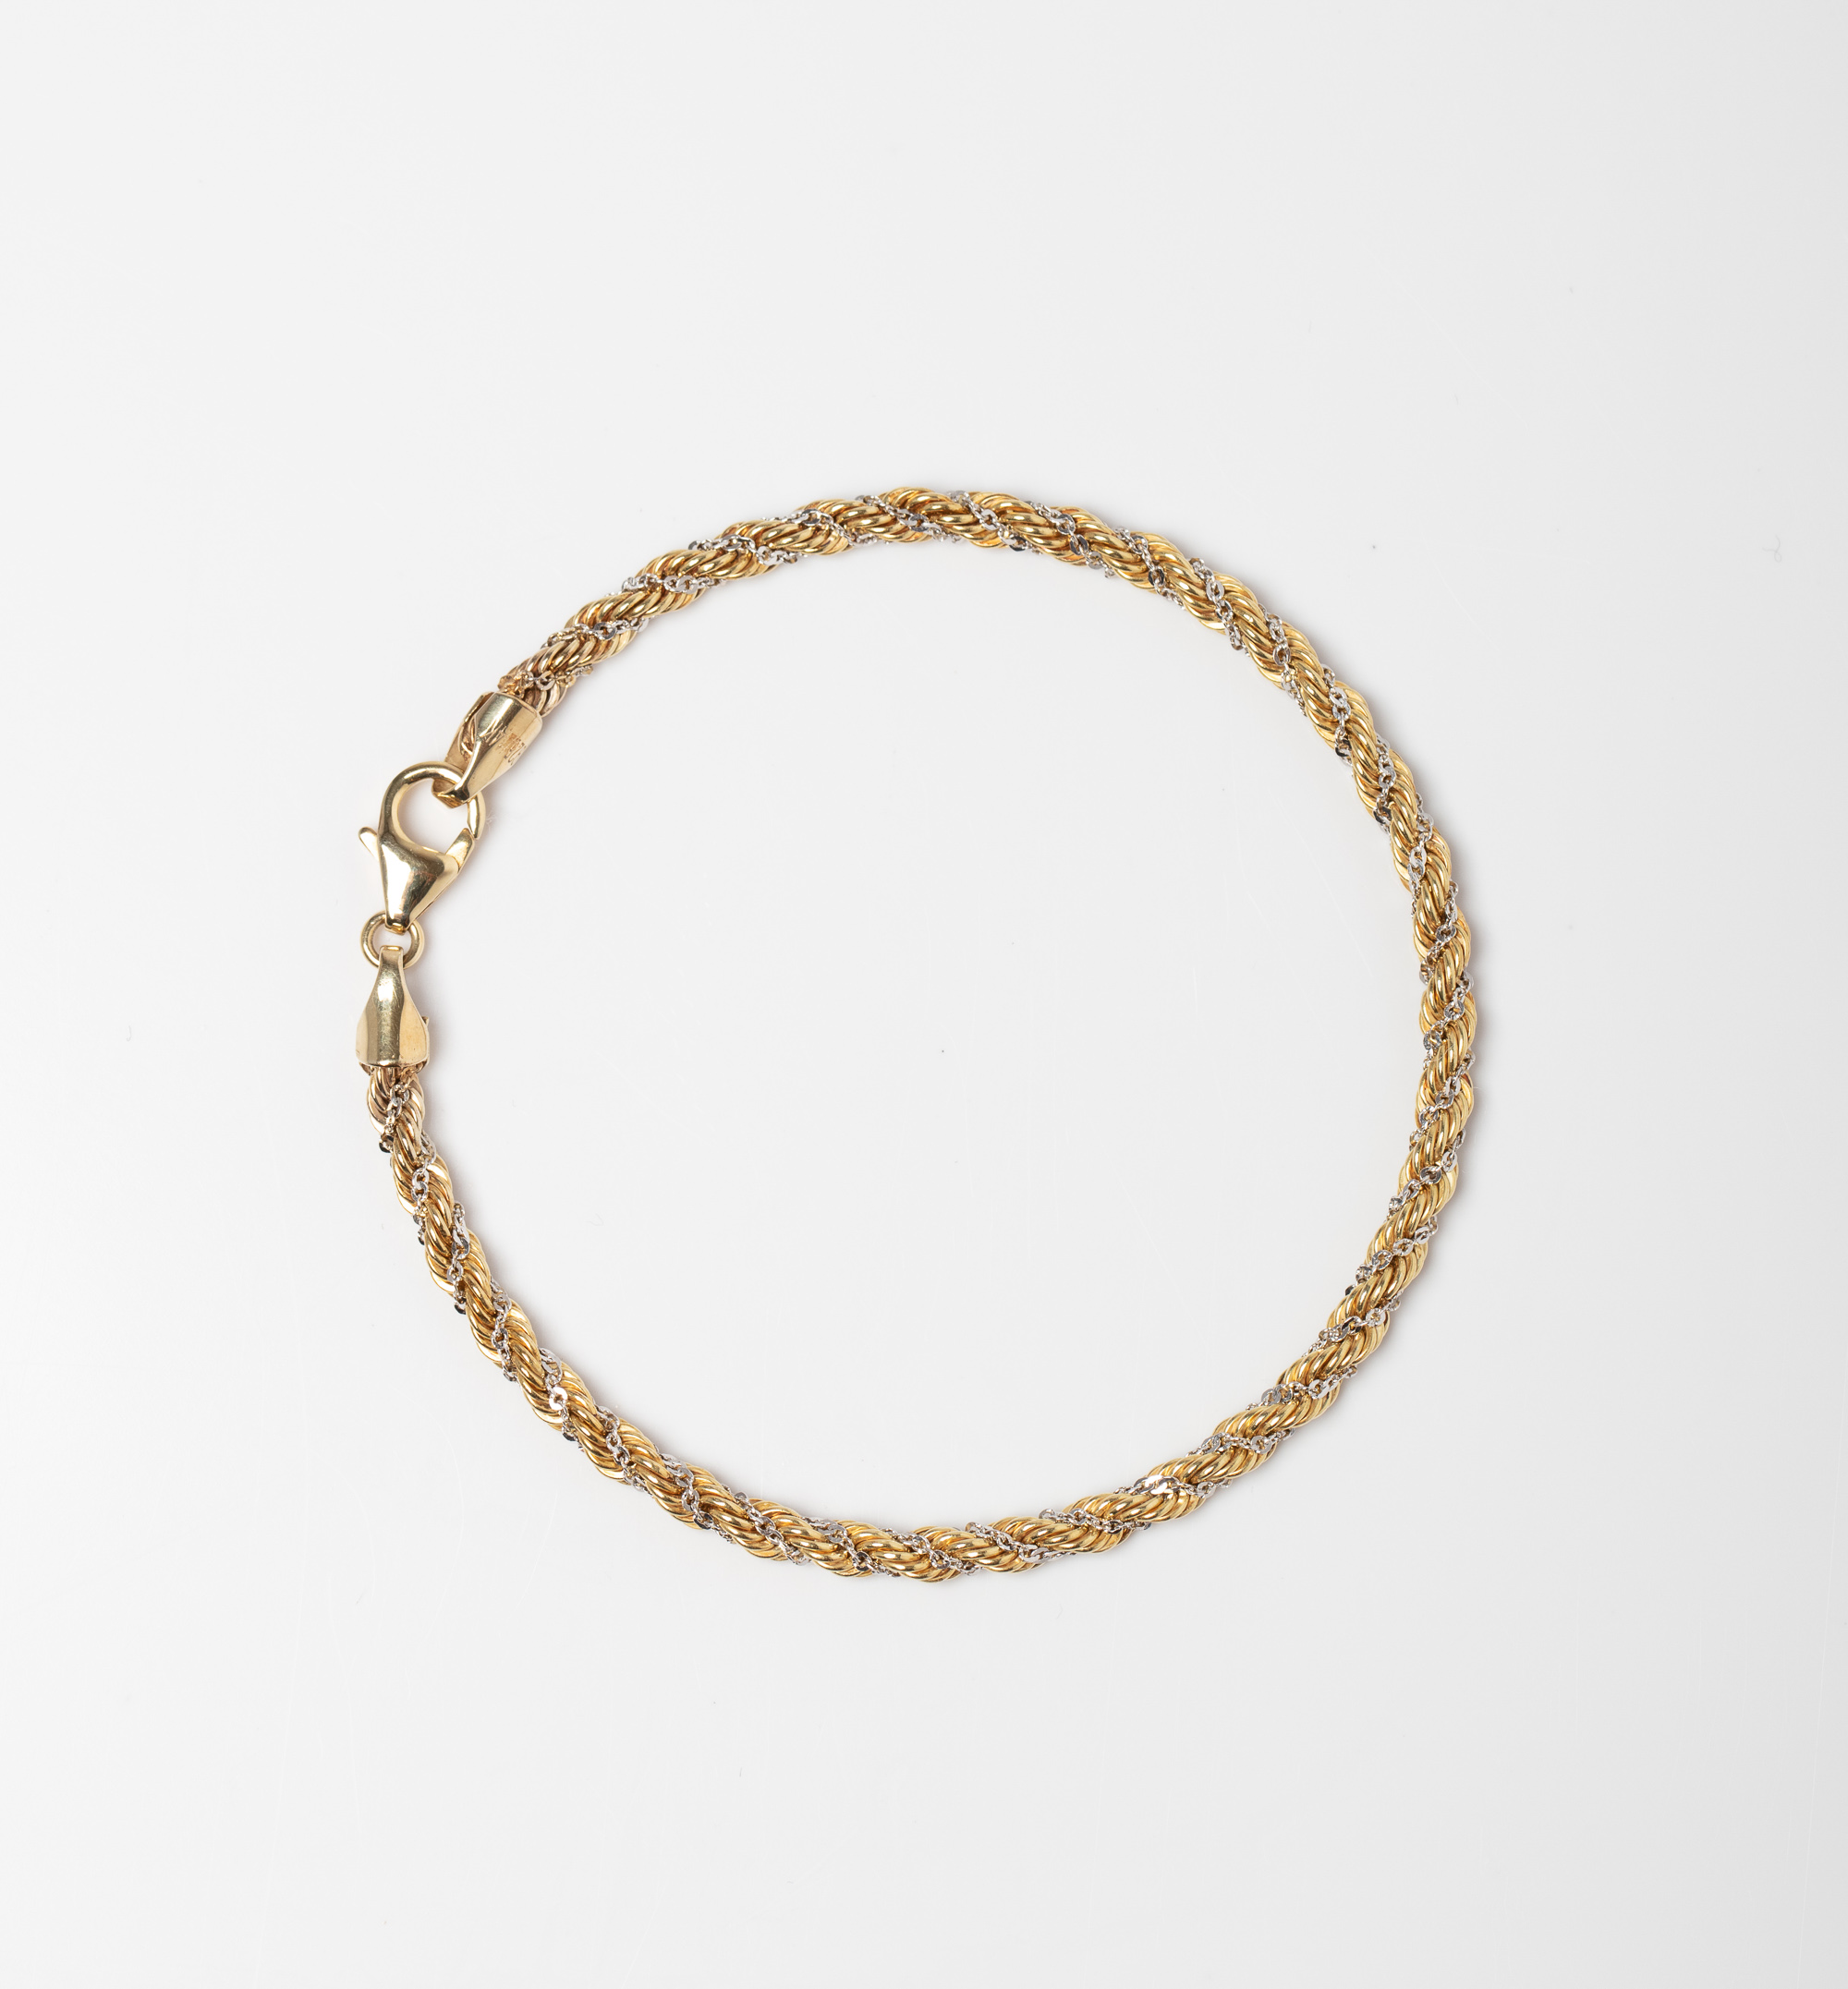 A 9CT GOLD & SILVER BONDED TWO TONE ROPE BRACELET